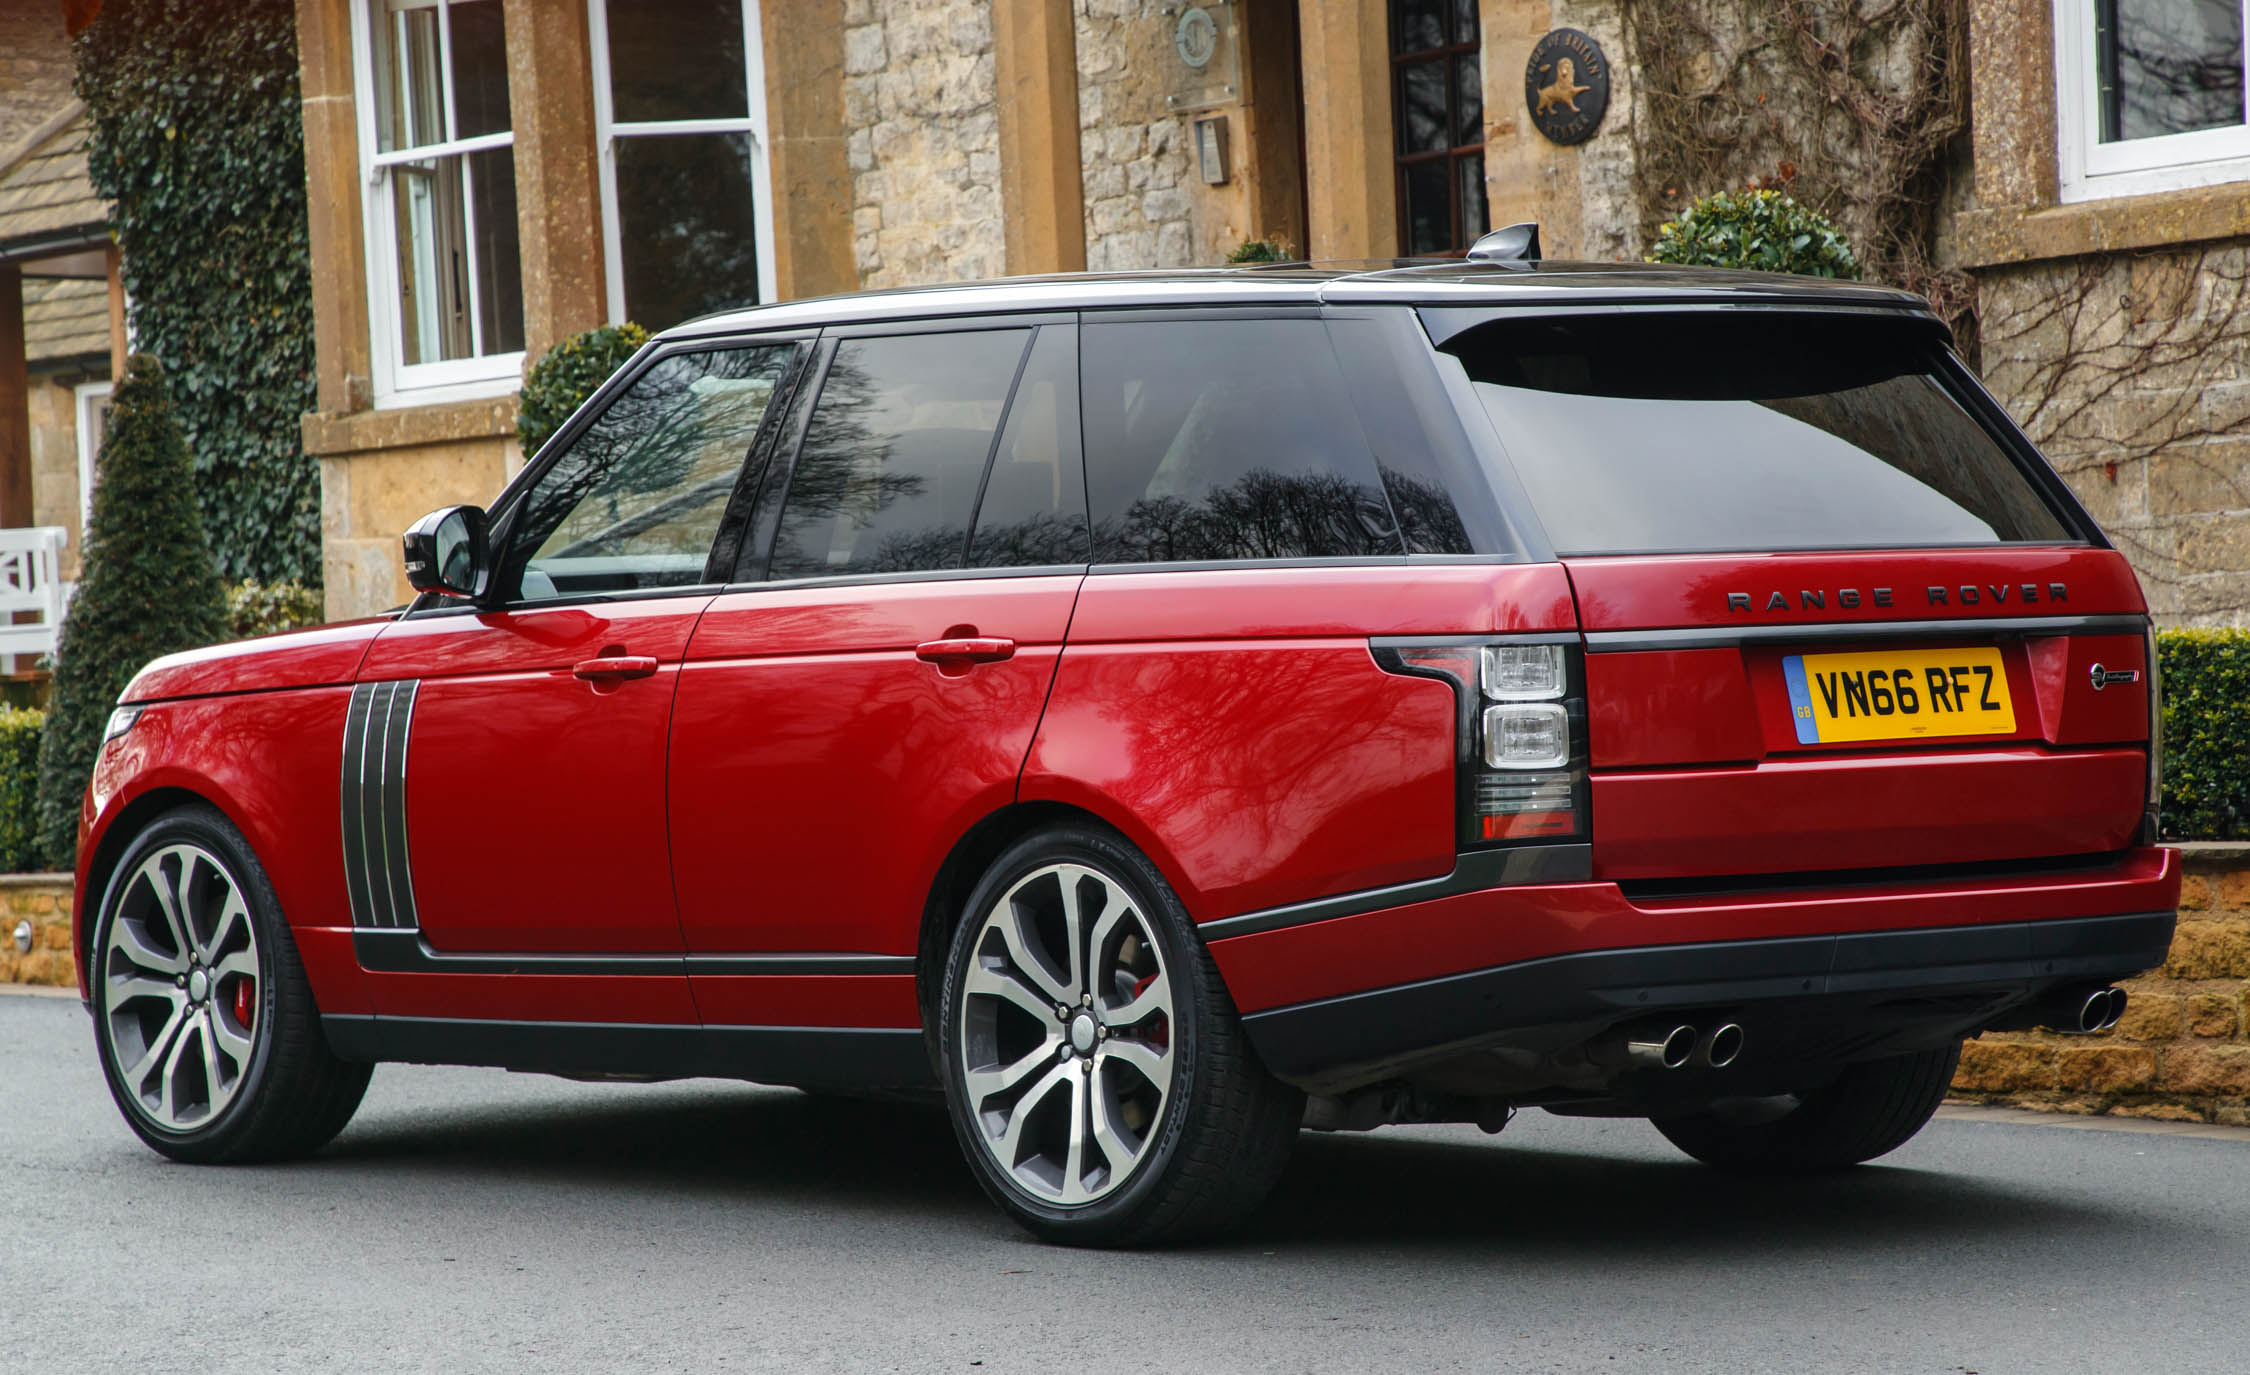 2017 Land Rover Range Rover SVAutobiography Dynamic Red Exterior Rear And Side (Photo 9 of 24)